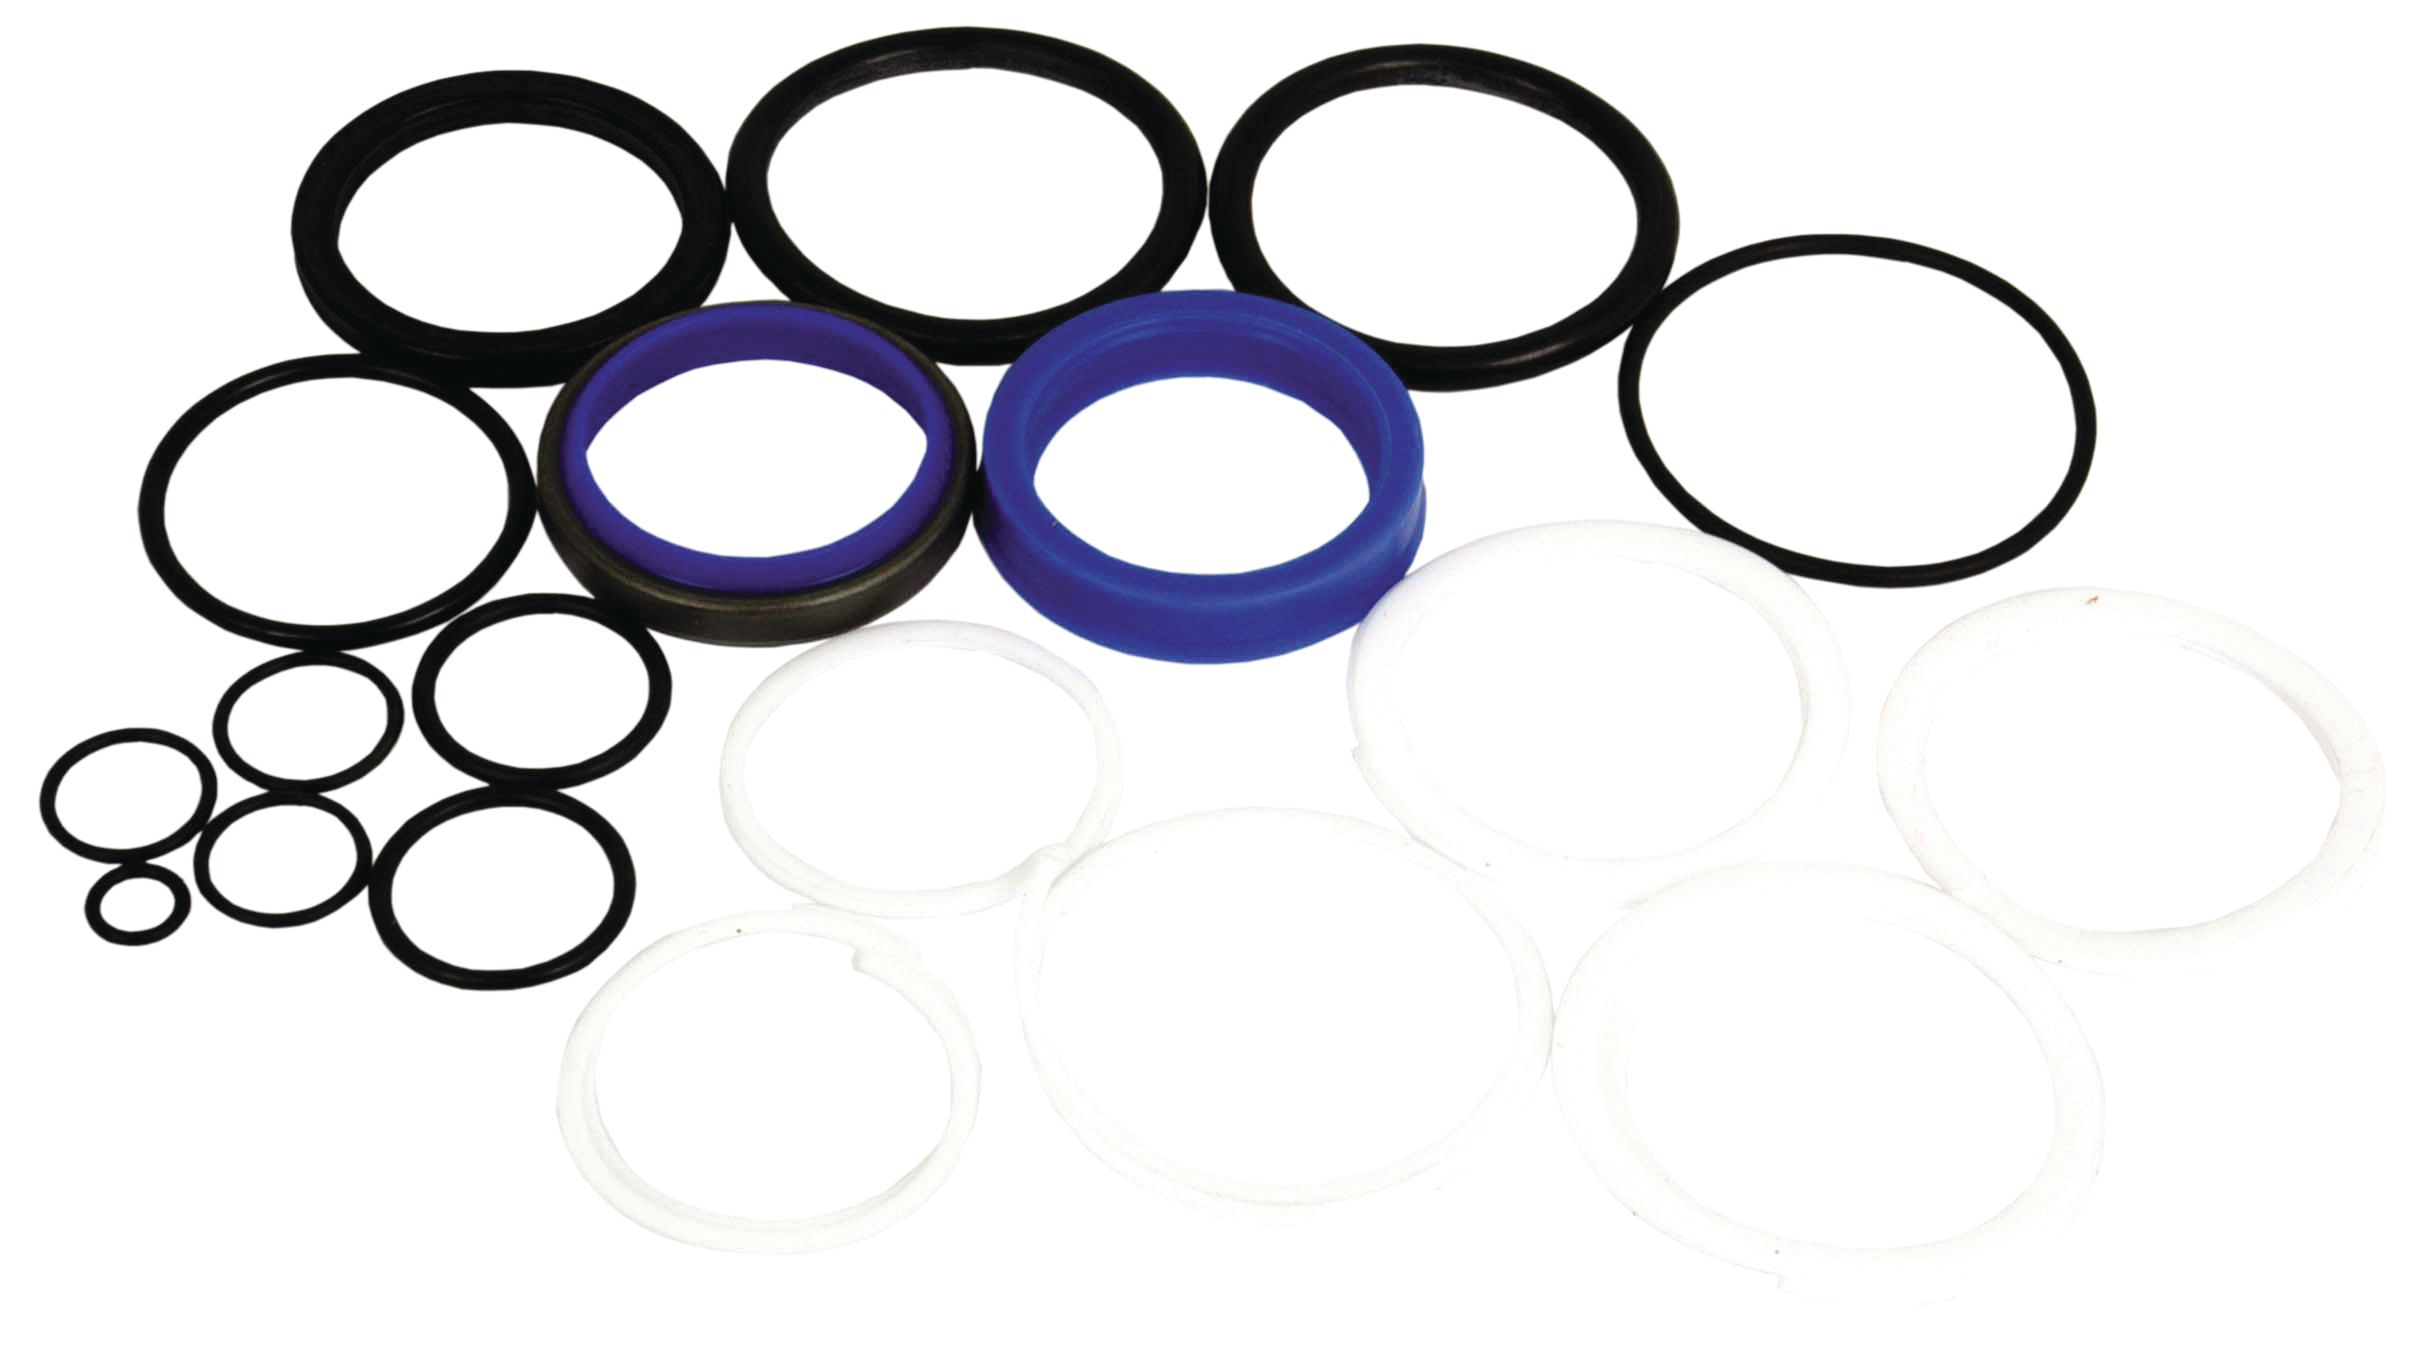 DAVID BROWN SEAL KIT 57950